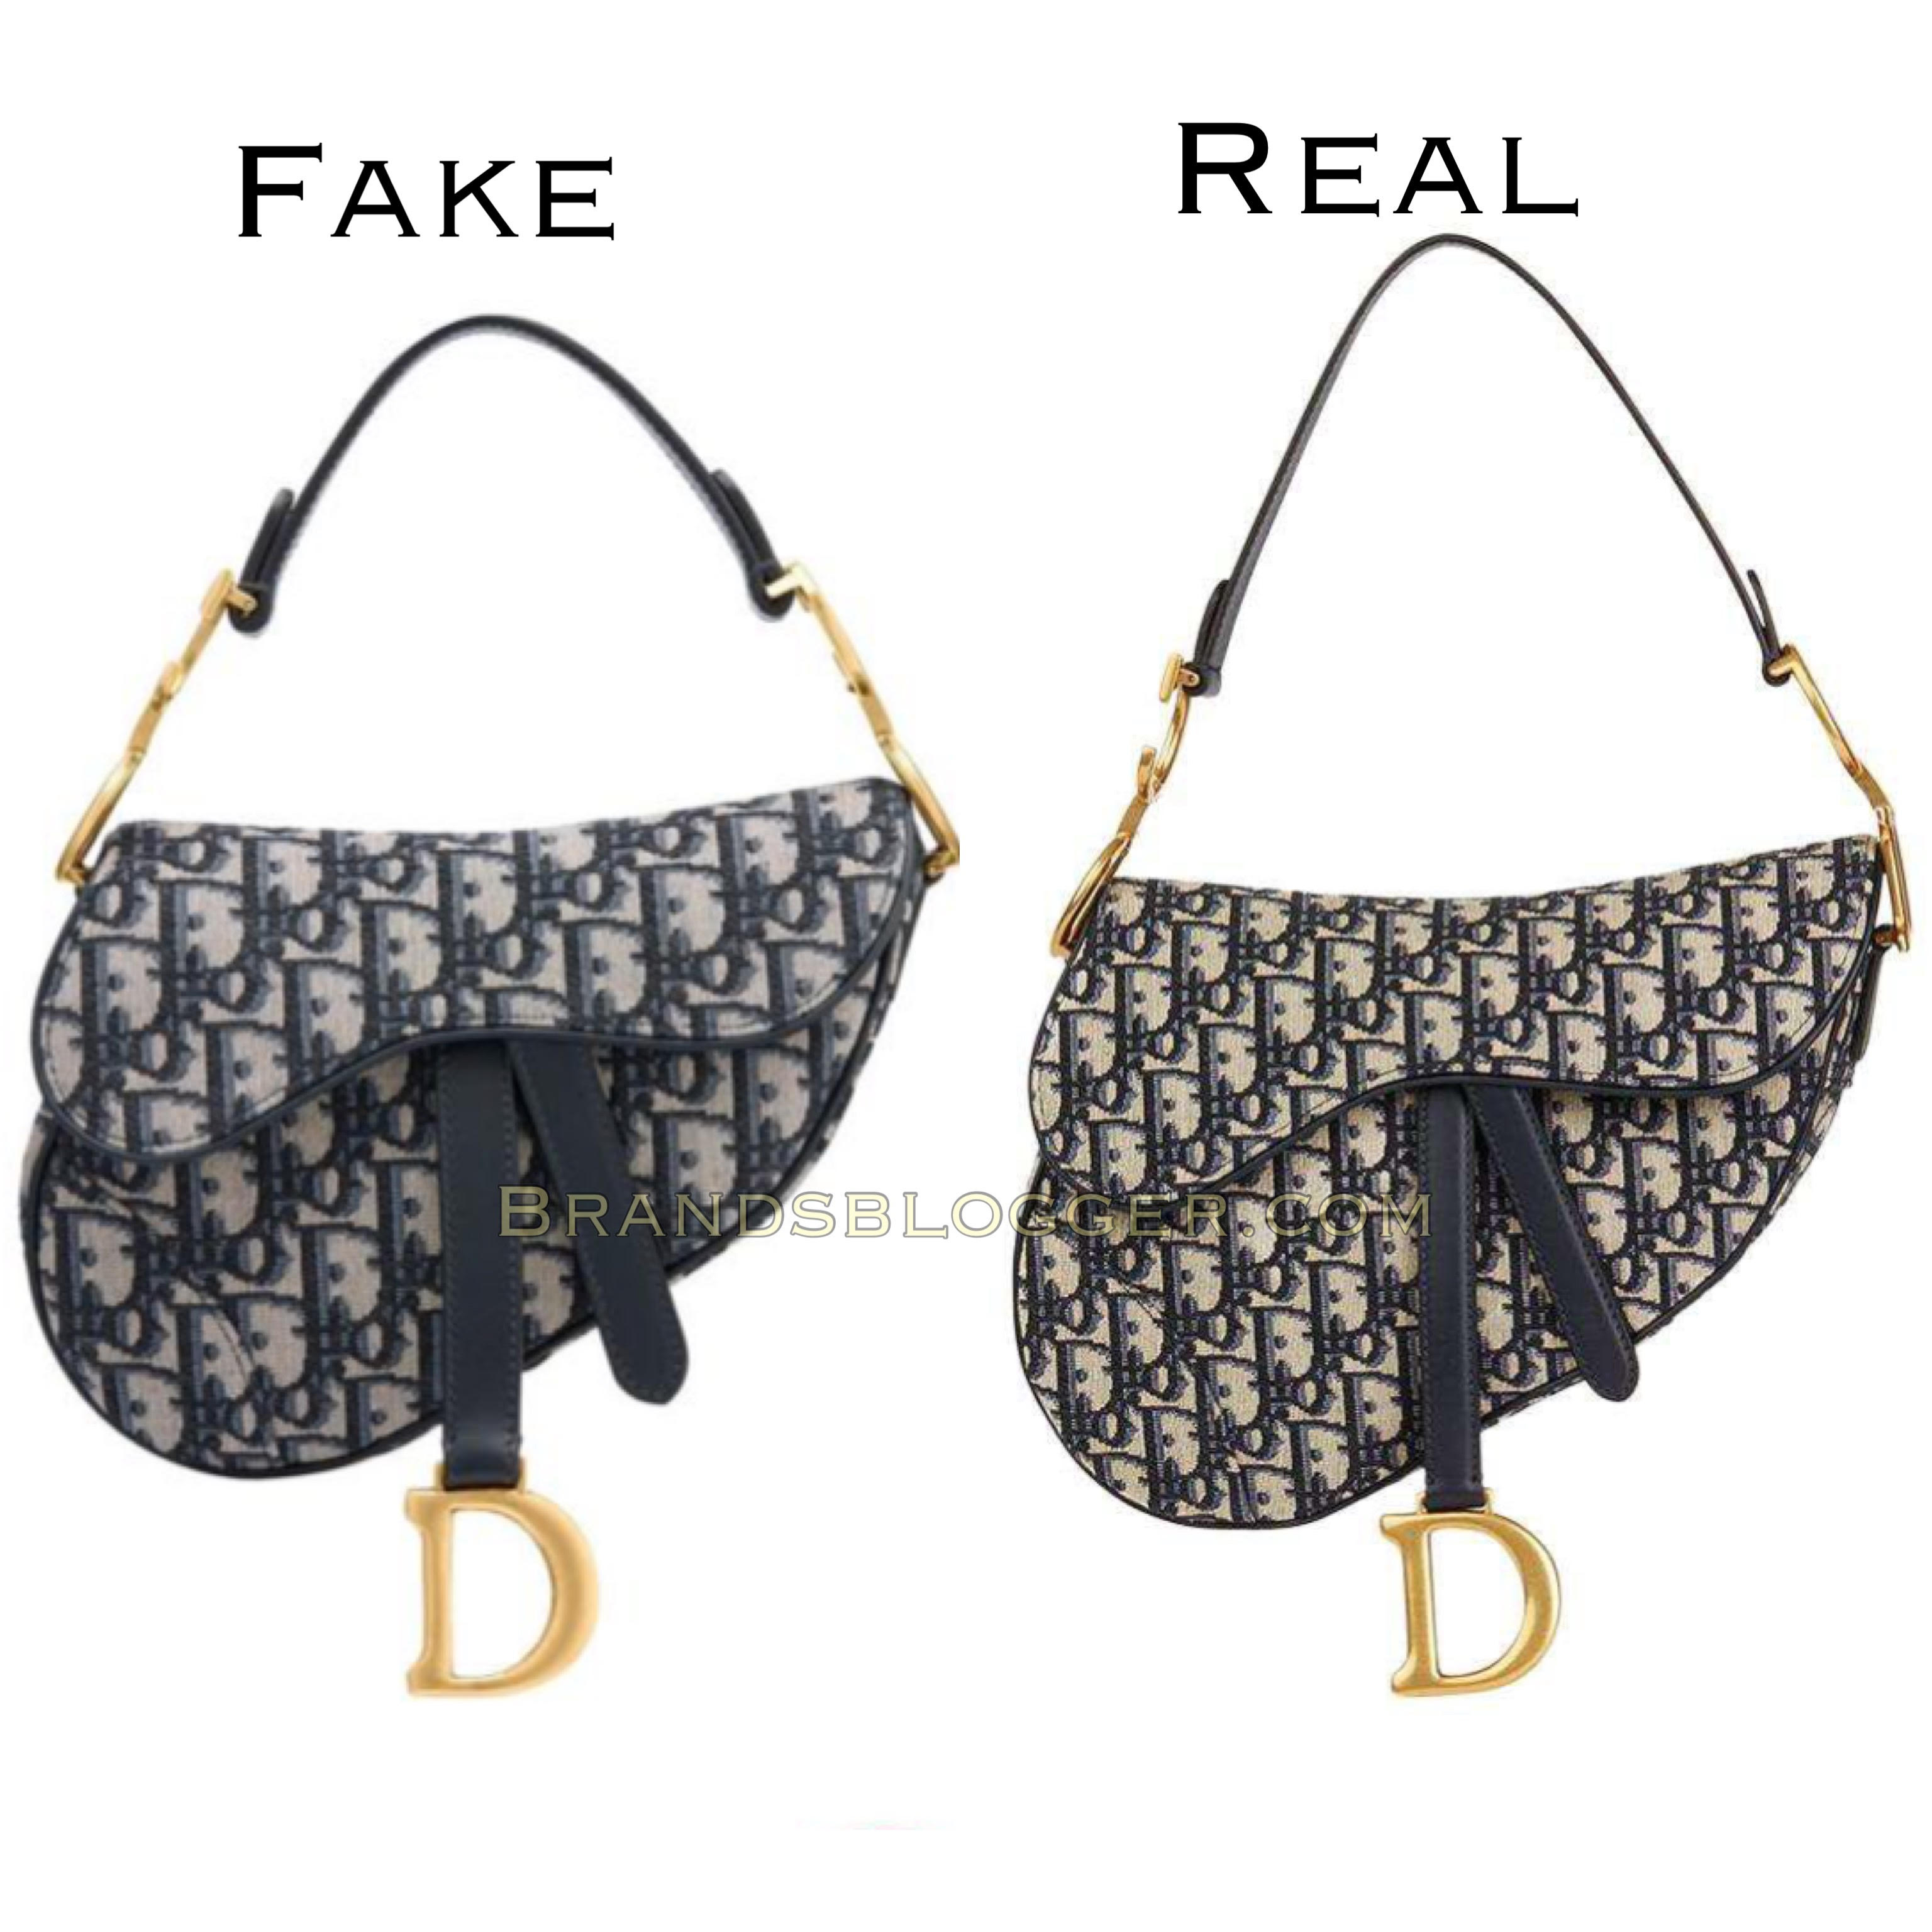 8f0756d618a ... with the authentic bag, in all the details, you will be able to make  the difference when you face a replica. Let's take a look at the pictures  below.